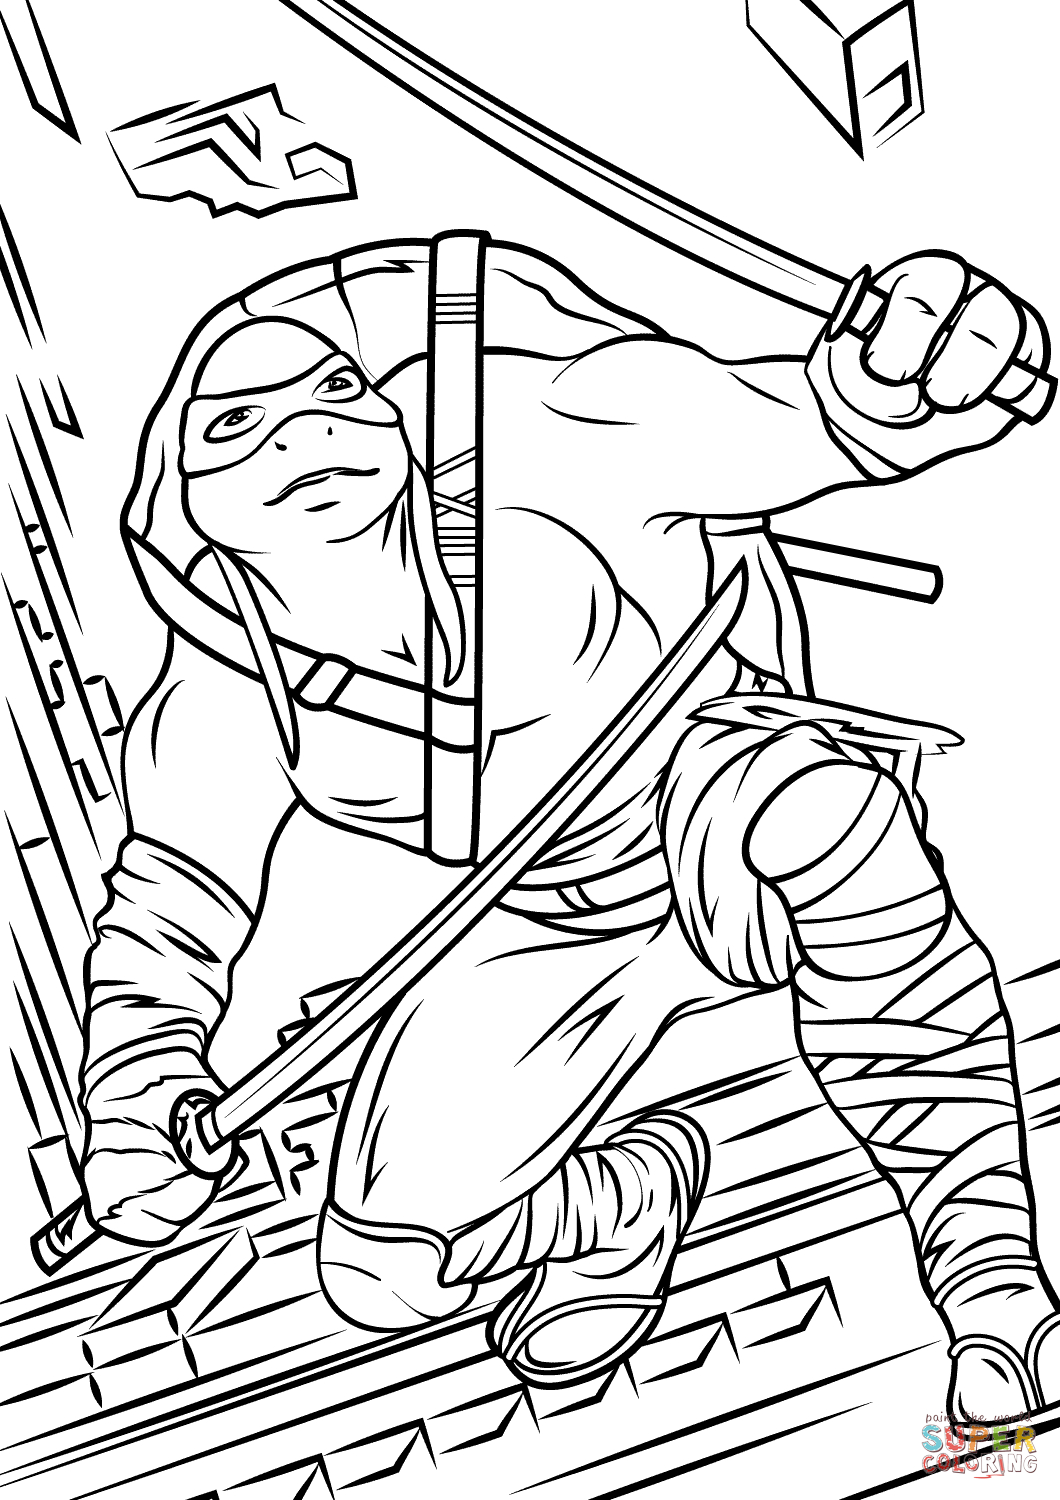 ninja turtle coloring book pages craftoholic teenage mutant ninja turtles coloring pages ninja book coloring turtle pages